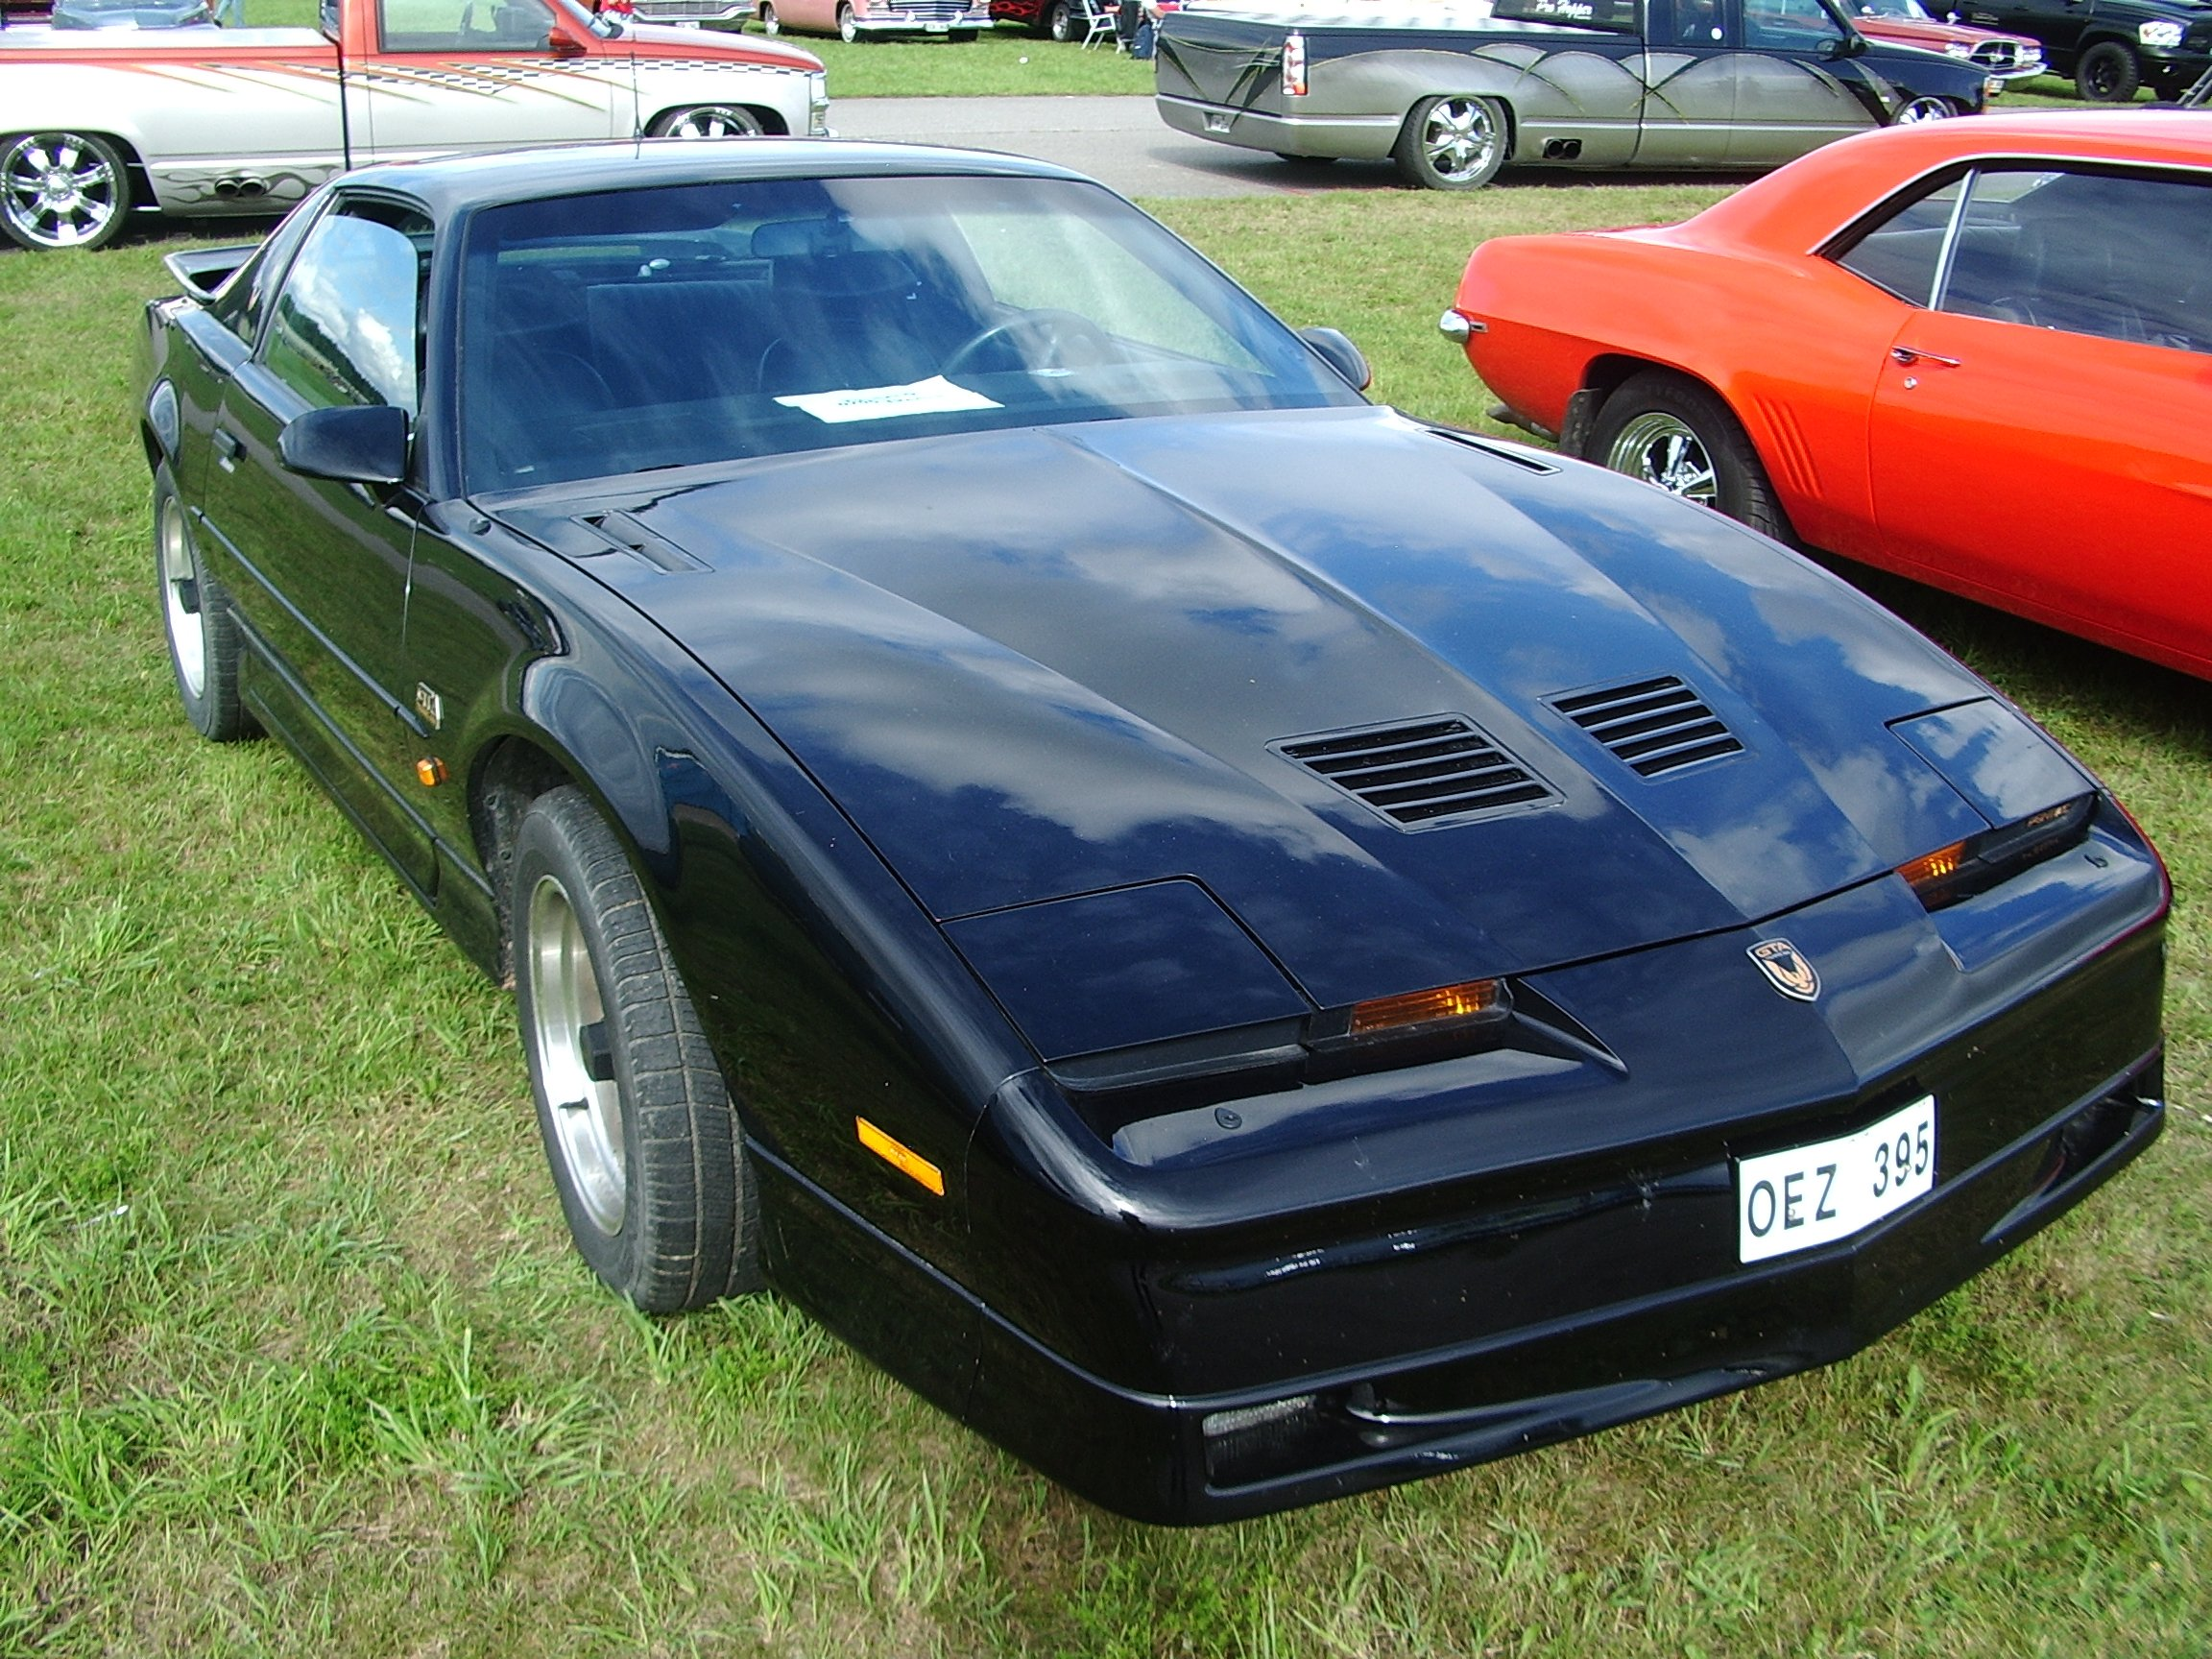 Modern American muscle cars at Barkarby (Stockholm and beyond)